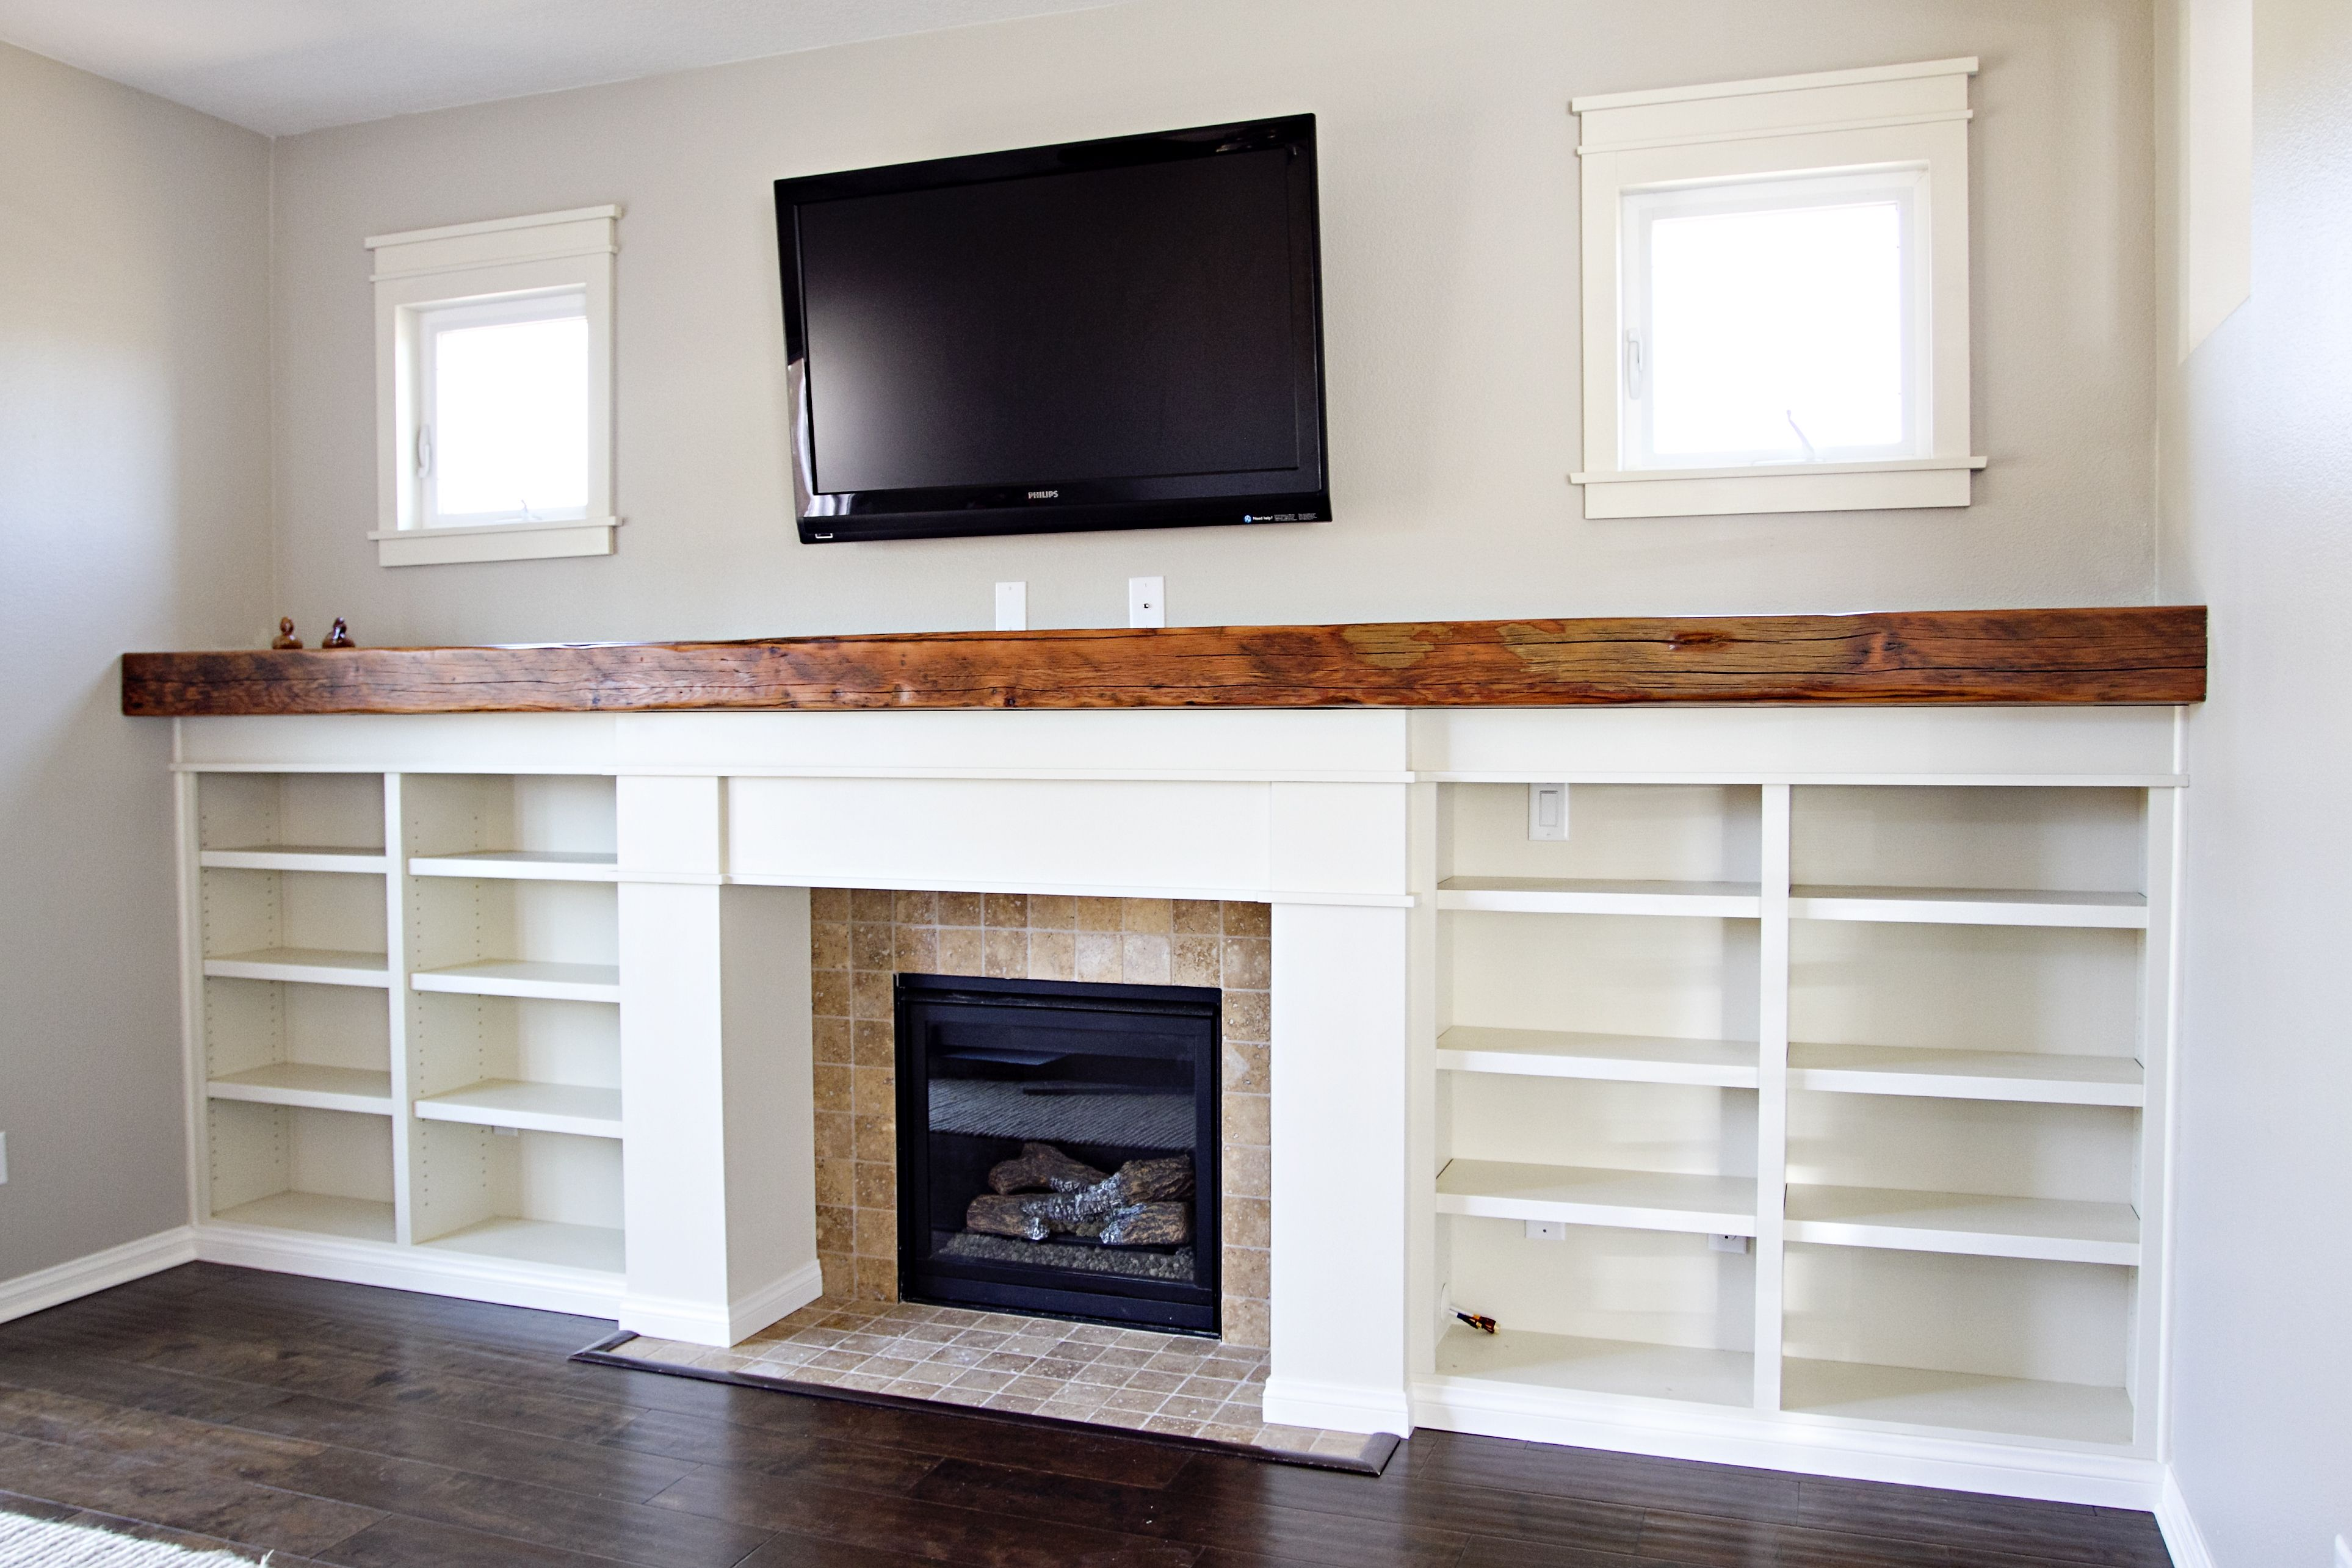 Custom fireplace surround, bookshelves, reclaimed wood ...